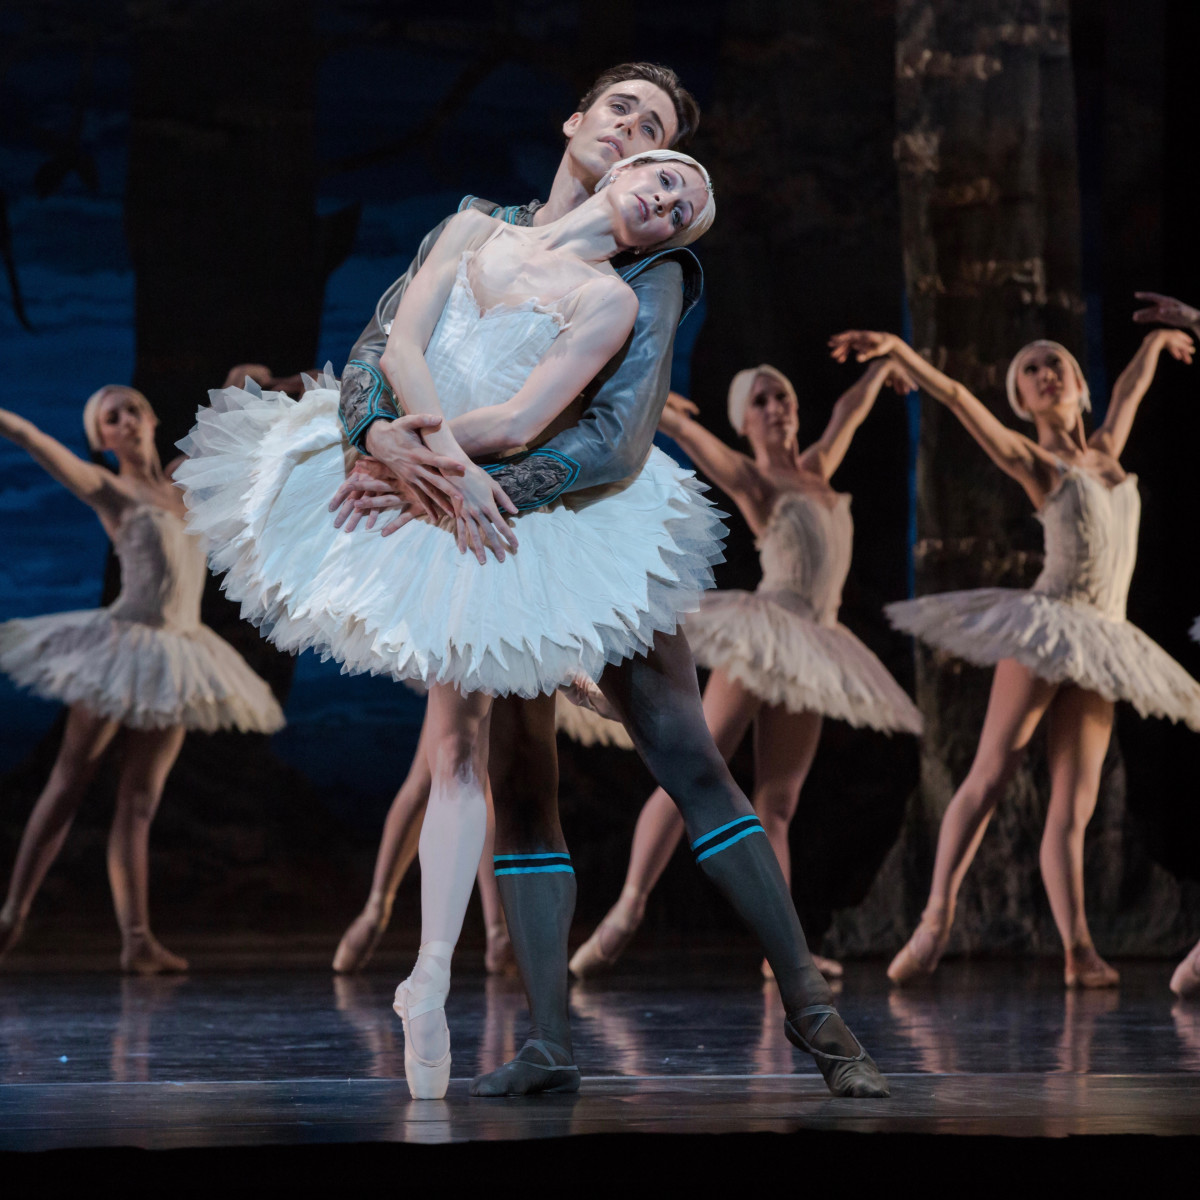 Houston Ballet: Sara Webb and Connor Walsh in Swan Lake